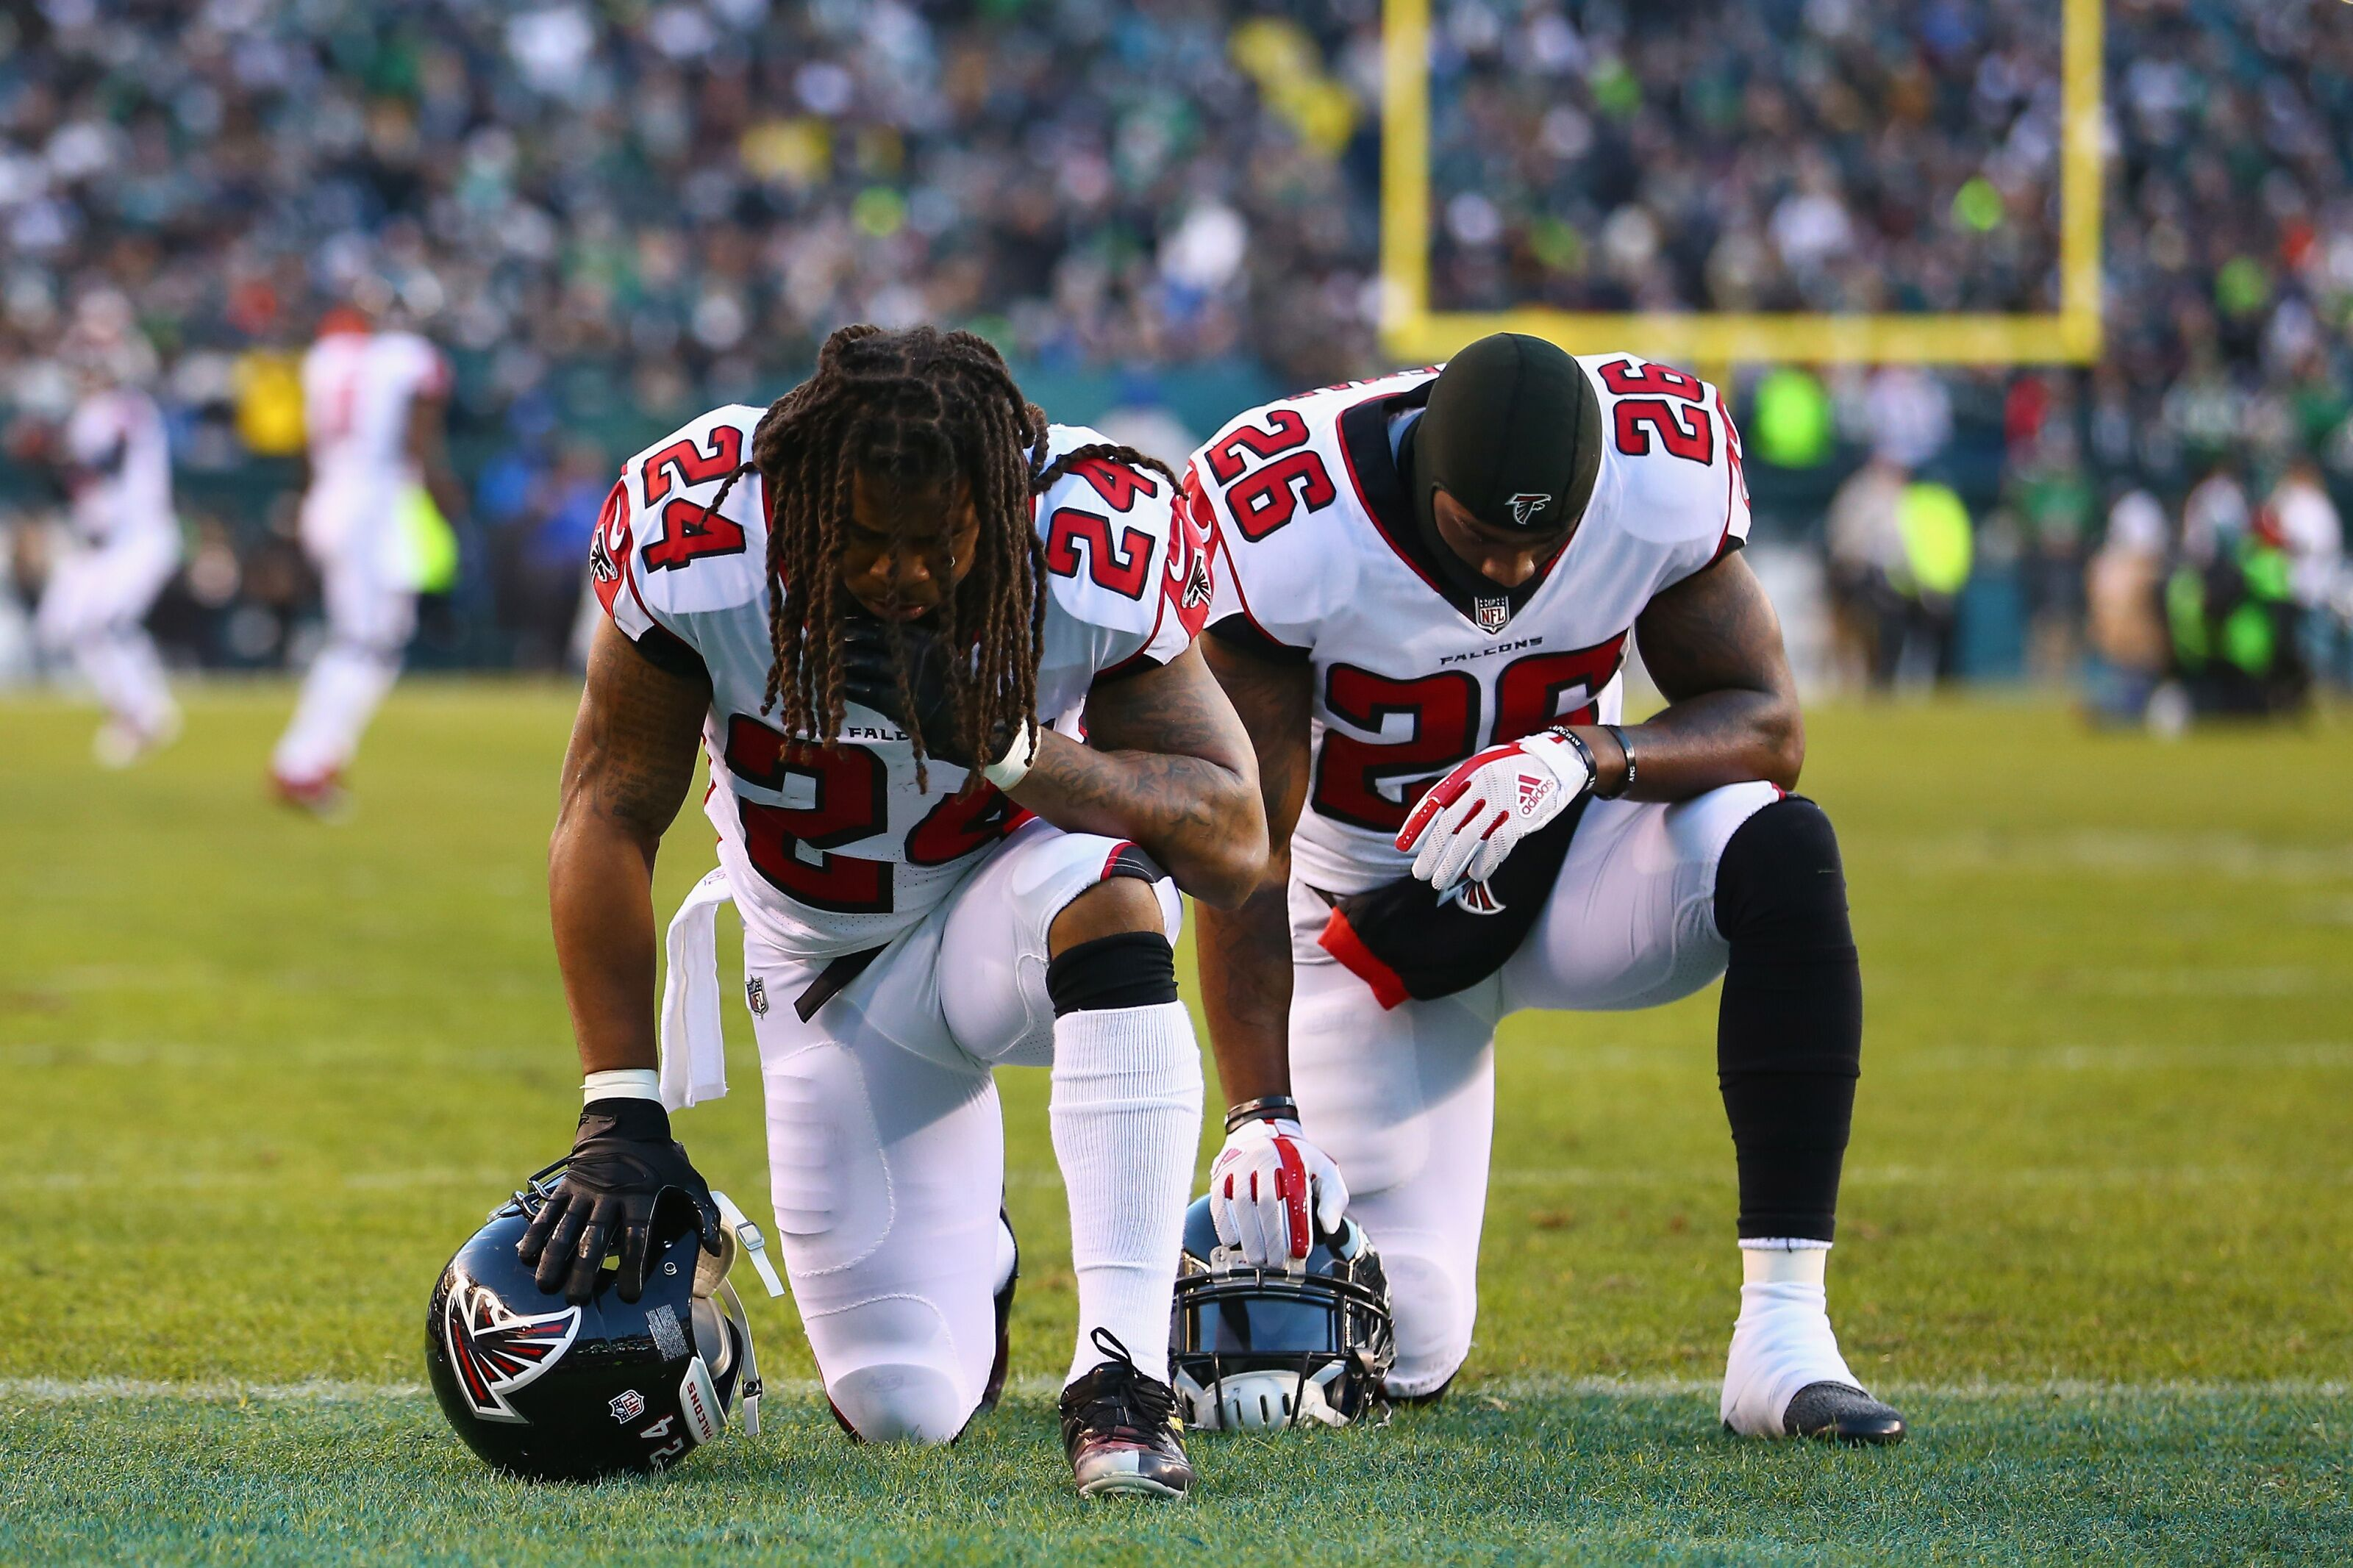 PHILADELPHIA, PA - JANUARY 13: Running back Devonta Freeman #24 and running back Tevin Coleman #26 of the Atlanta Falcons take a knee in the endzone before playing against the Philadelphia Eagles in the NFC Divisional Playoff game at Lincoln Financial Field on January 13, 2018 in Philadelphia, Pennsylvania. (Photo by Mitchell Leff/Getty Images)